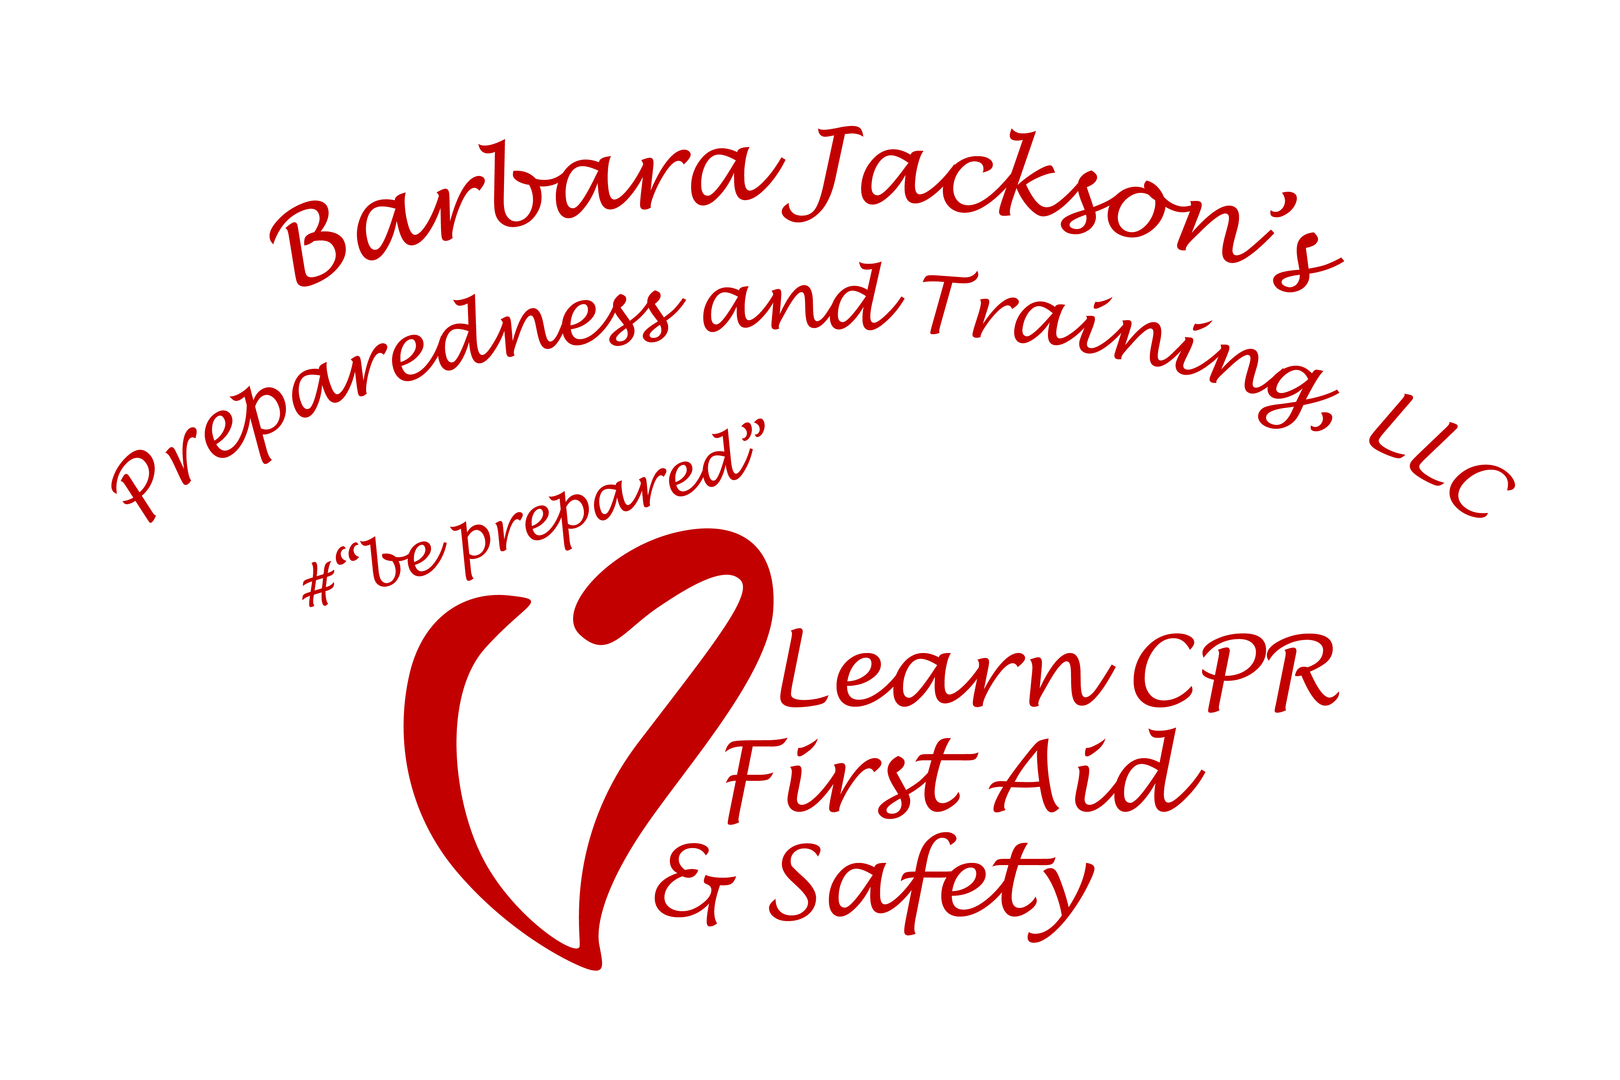 Cpr and first aid certification american heart association and cpr and first aid certification american heart association and american red cross training preparedness and training conway ar xflitez Choice Image